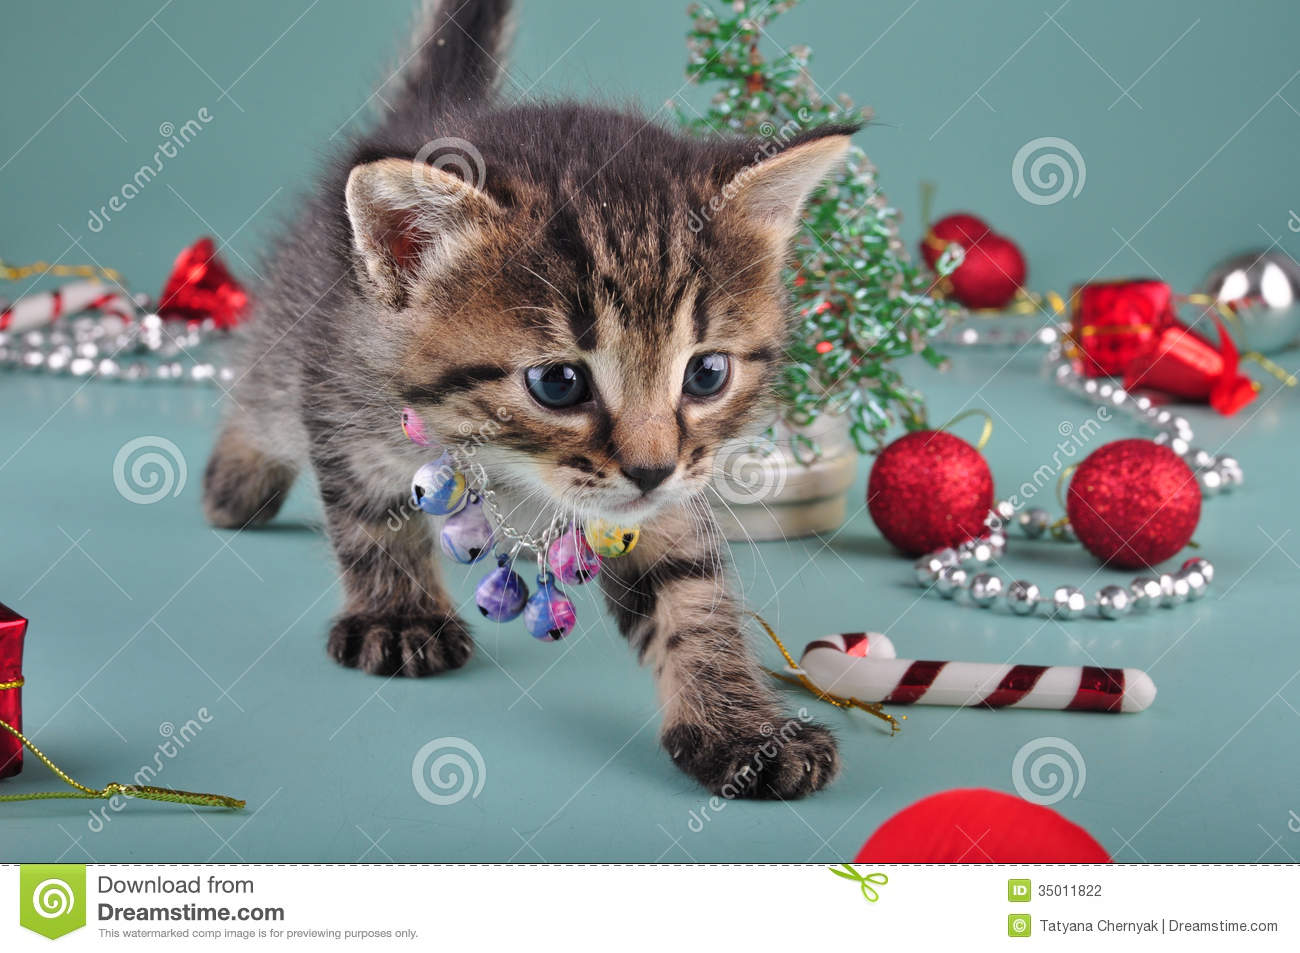 how to stop kitten from christmas tree